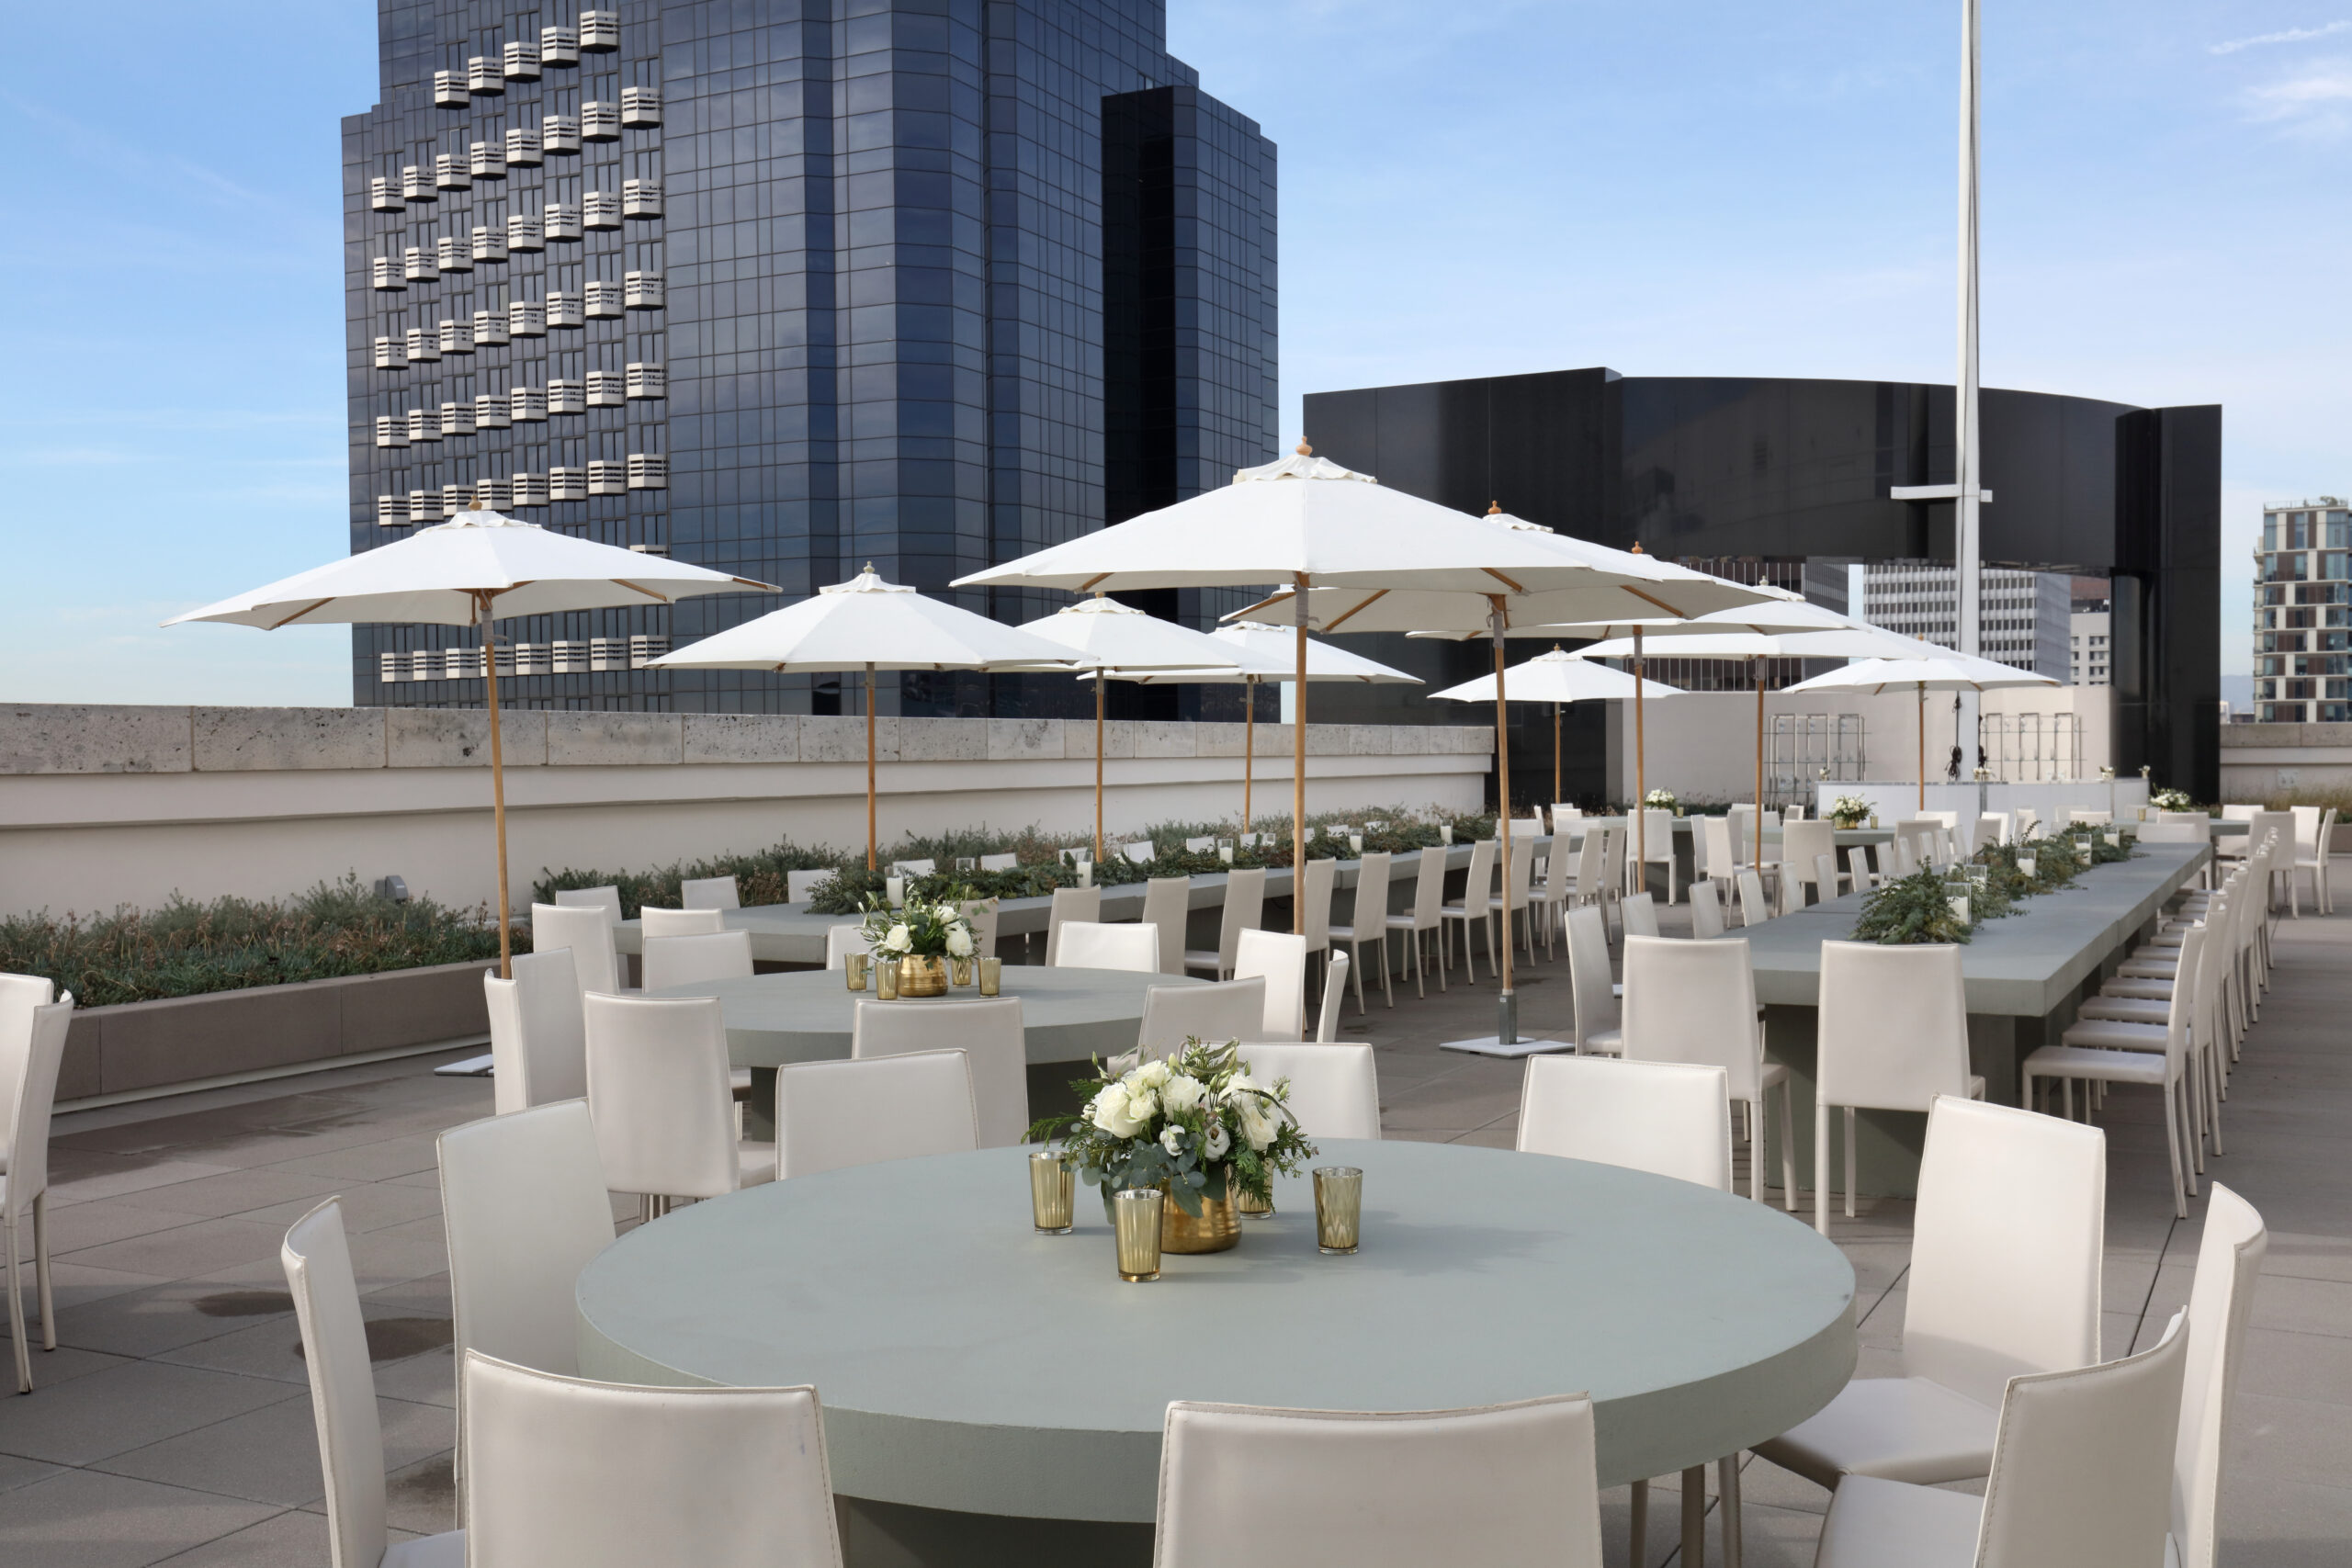 AMMP Wolfgang Puck Skyline Seating View